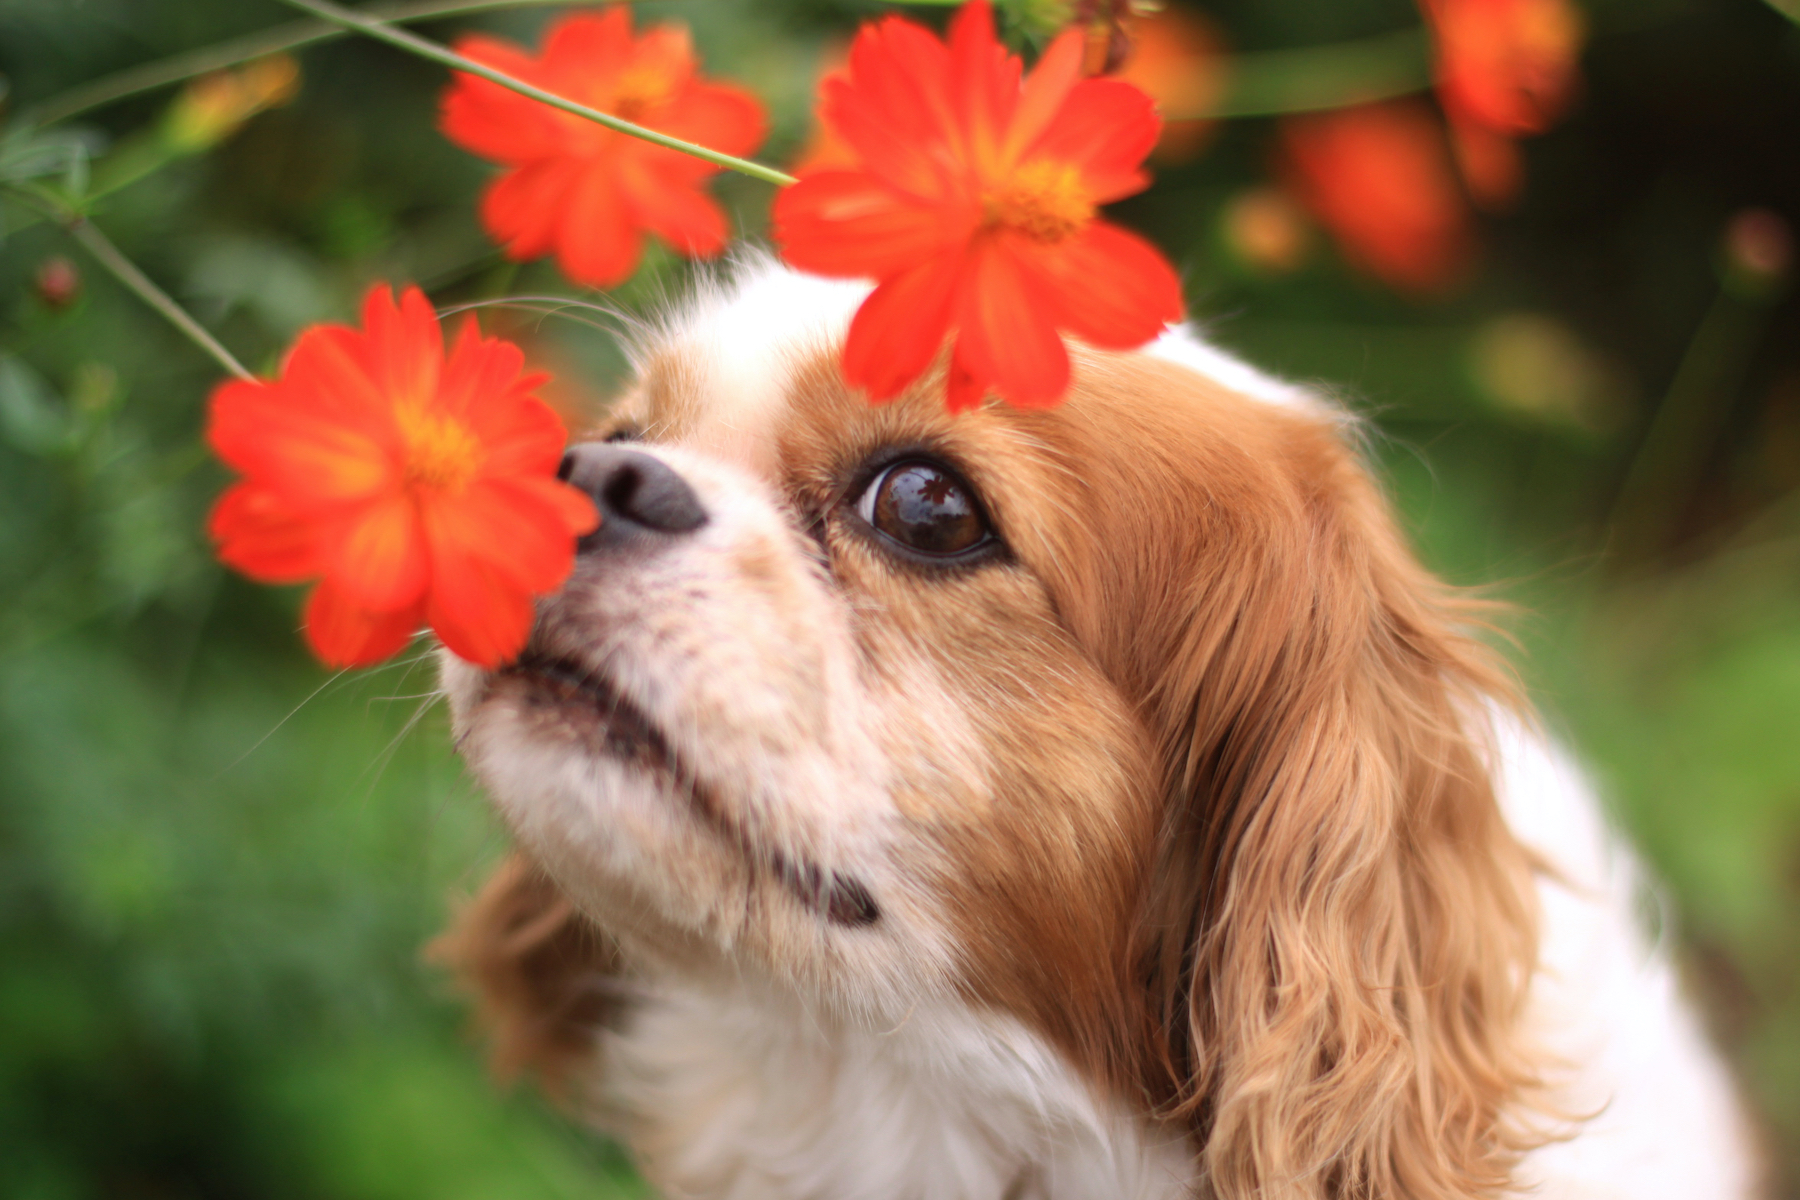 Canva - The dog of the smile and flowers